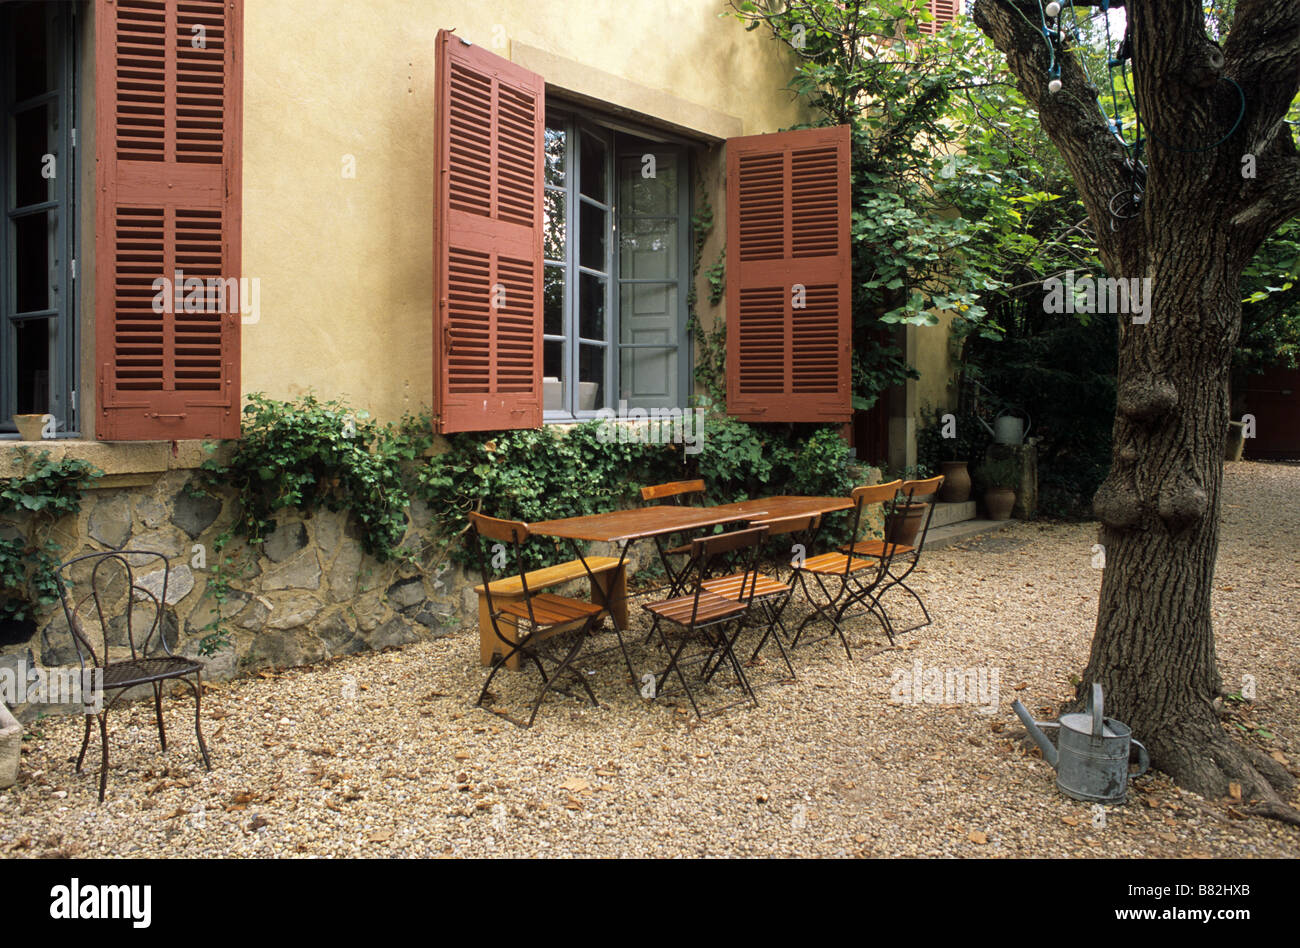 The exterior of the paul cezanne workshop studio or atelier stock photo royalty free image - Atelier cuisine aix en provence ...